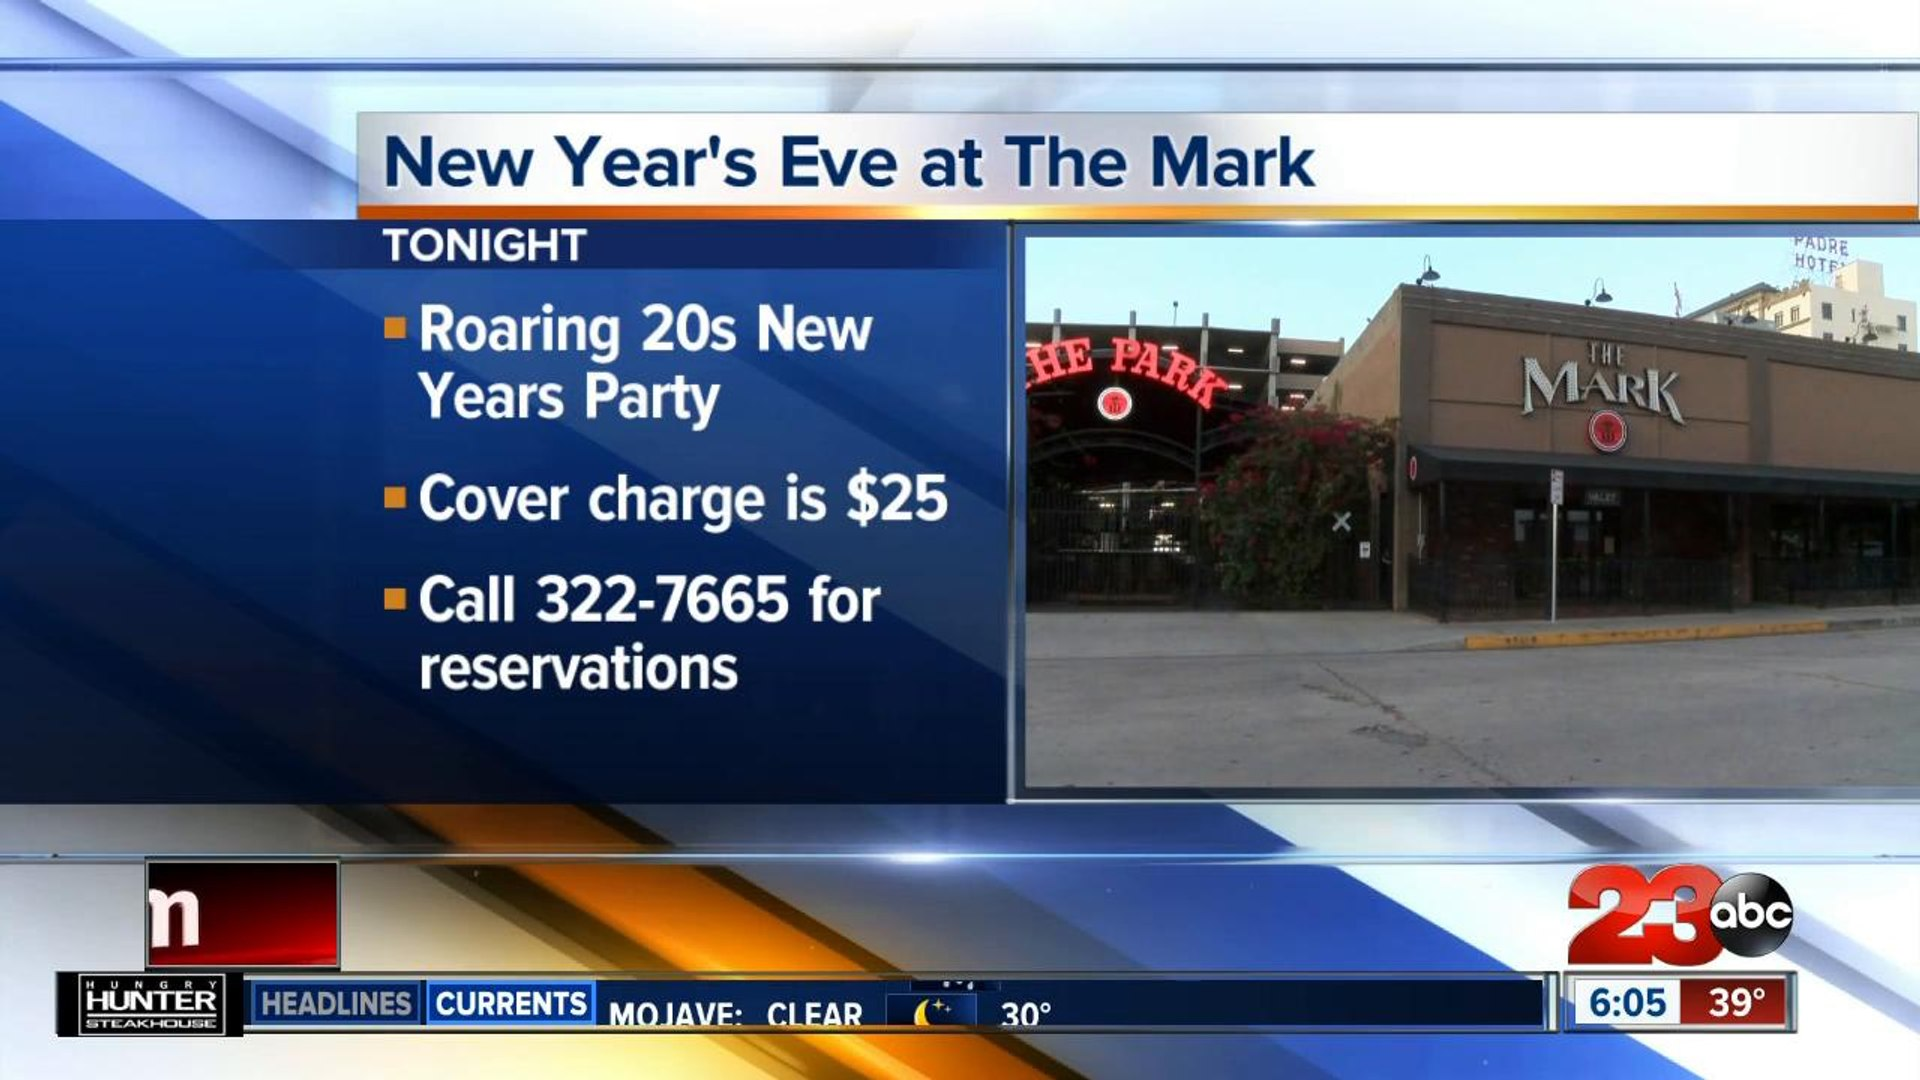 NYE Events around town